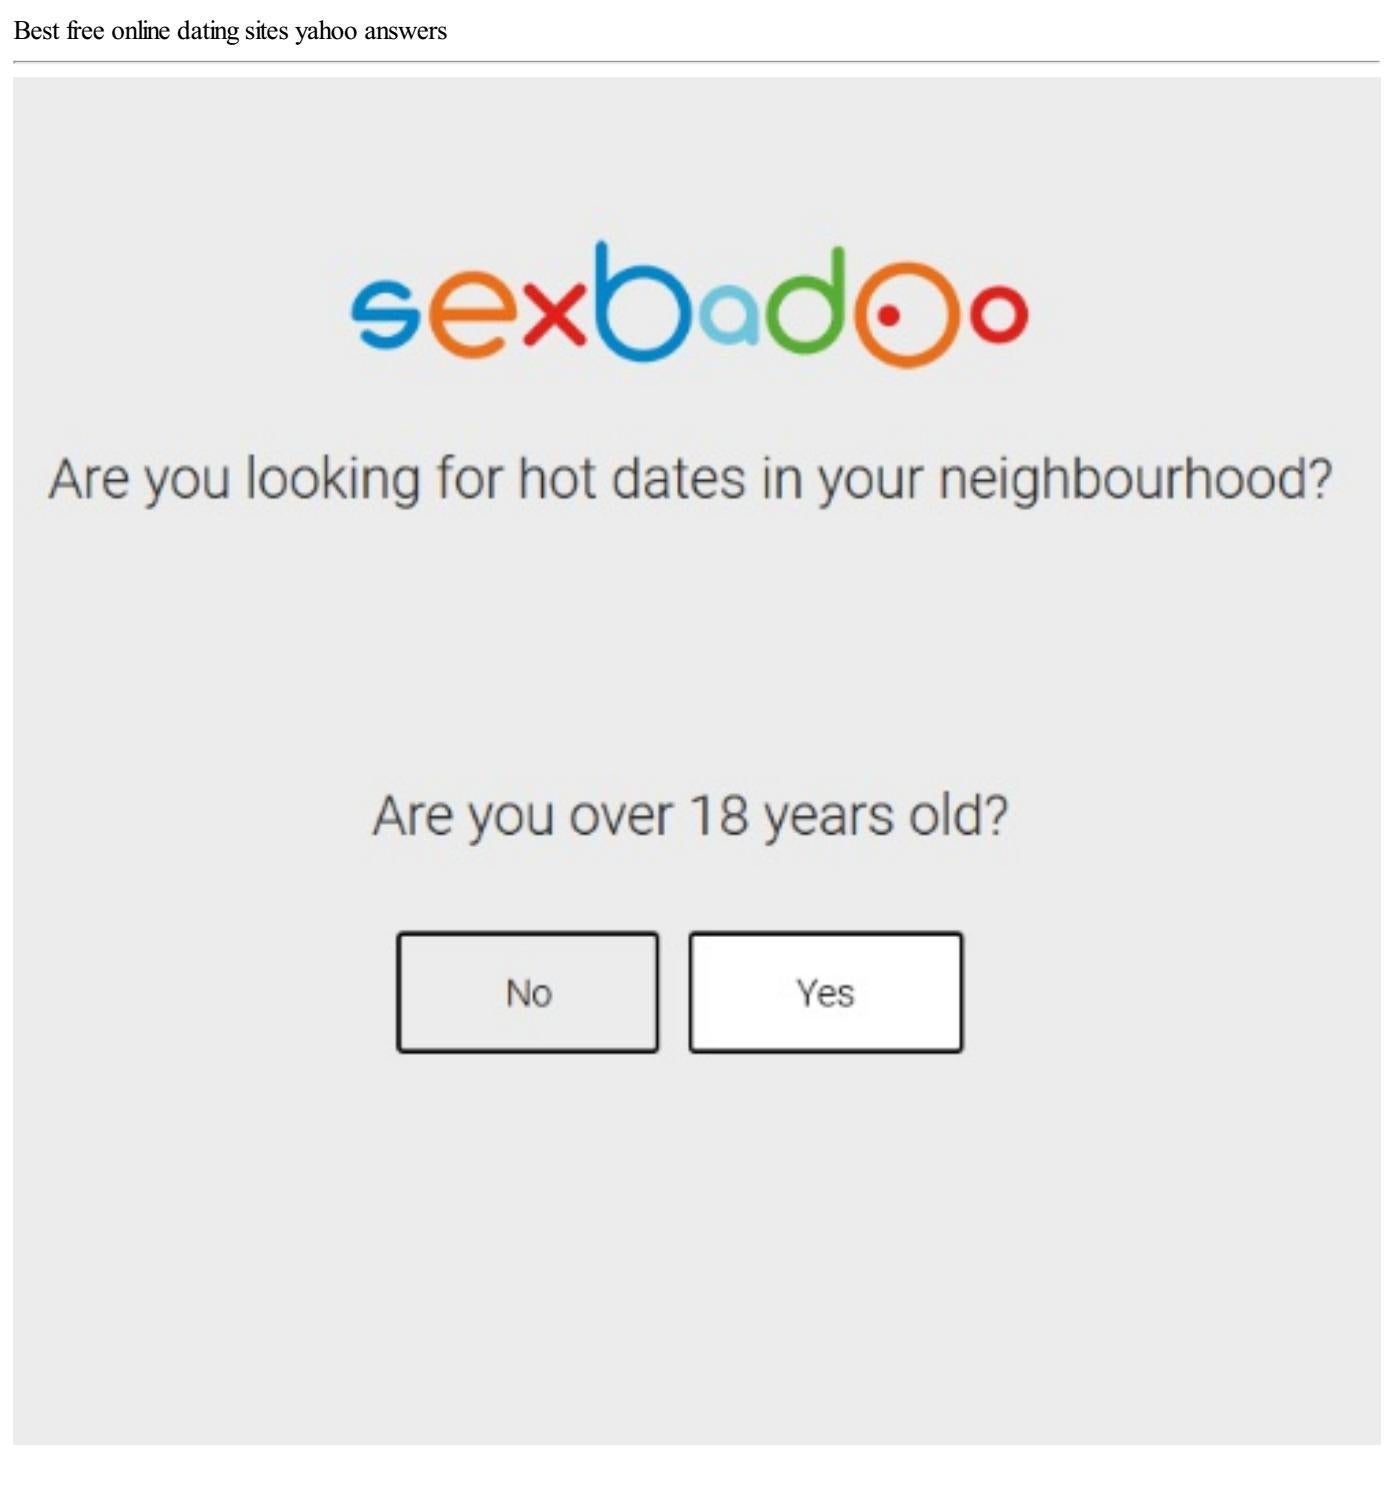 Best dating sites yahoo answers